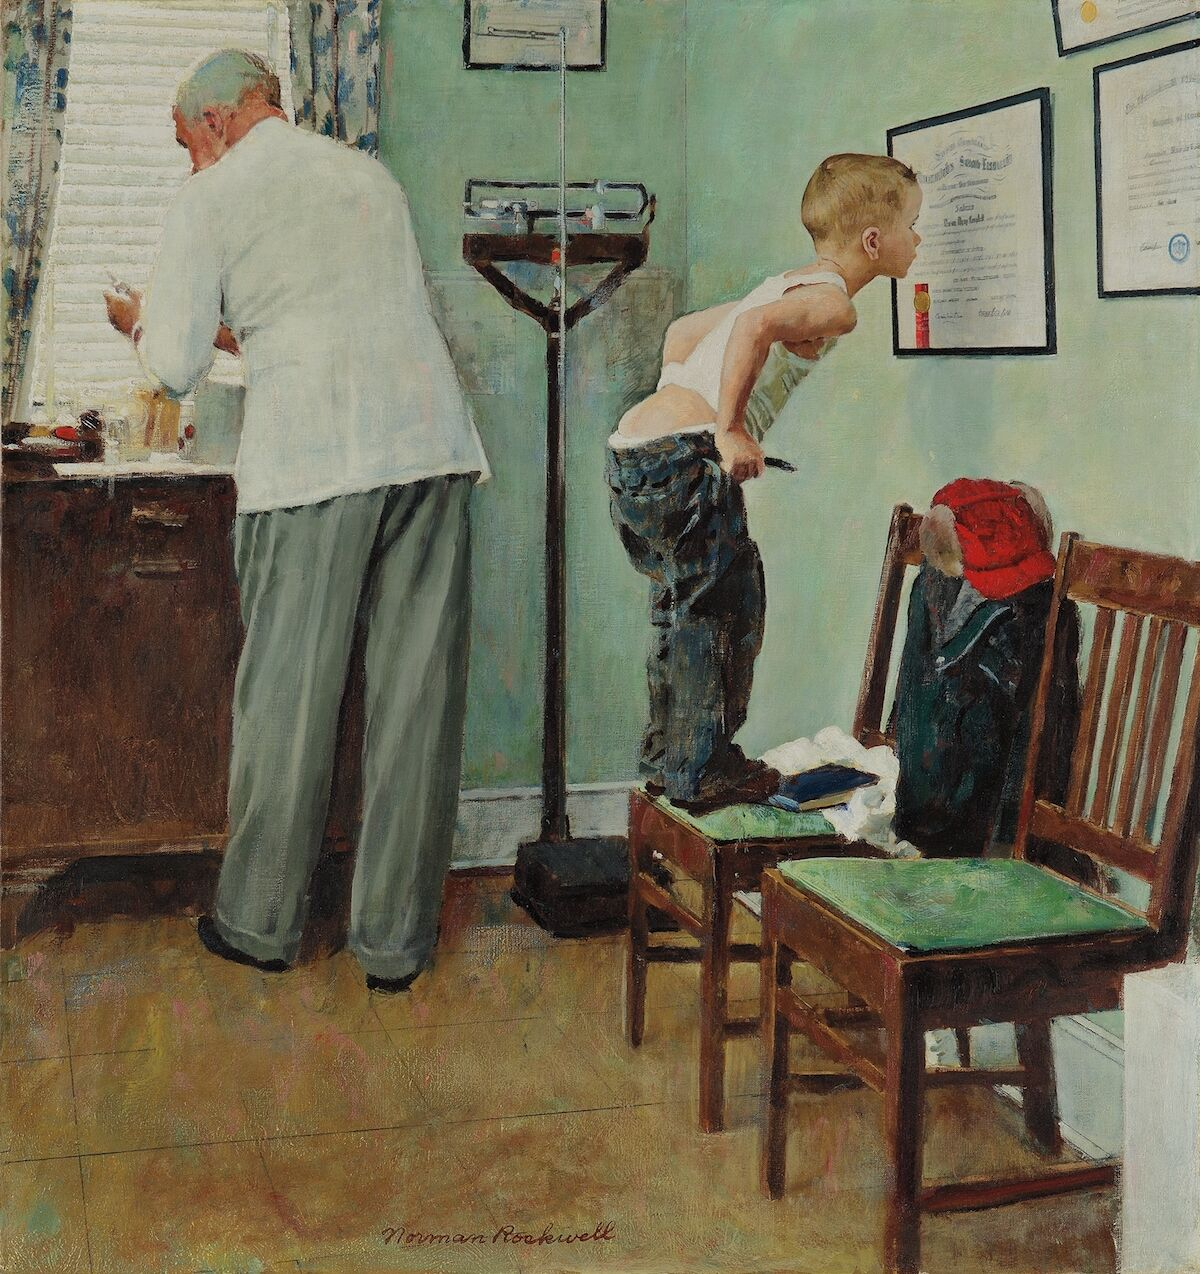 Norman Rockwell, Before the Shot, 1958. Sold for $4.7 million. Courtesy Phillips.